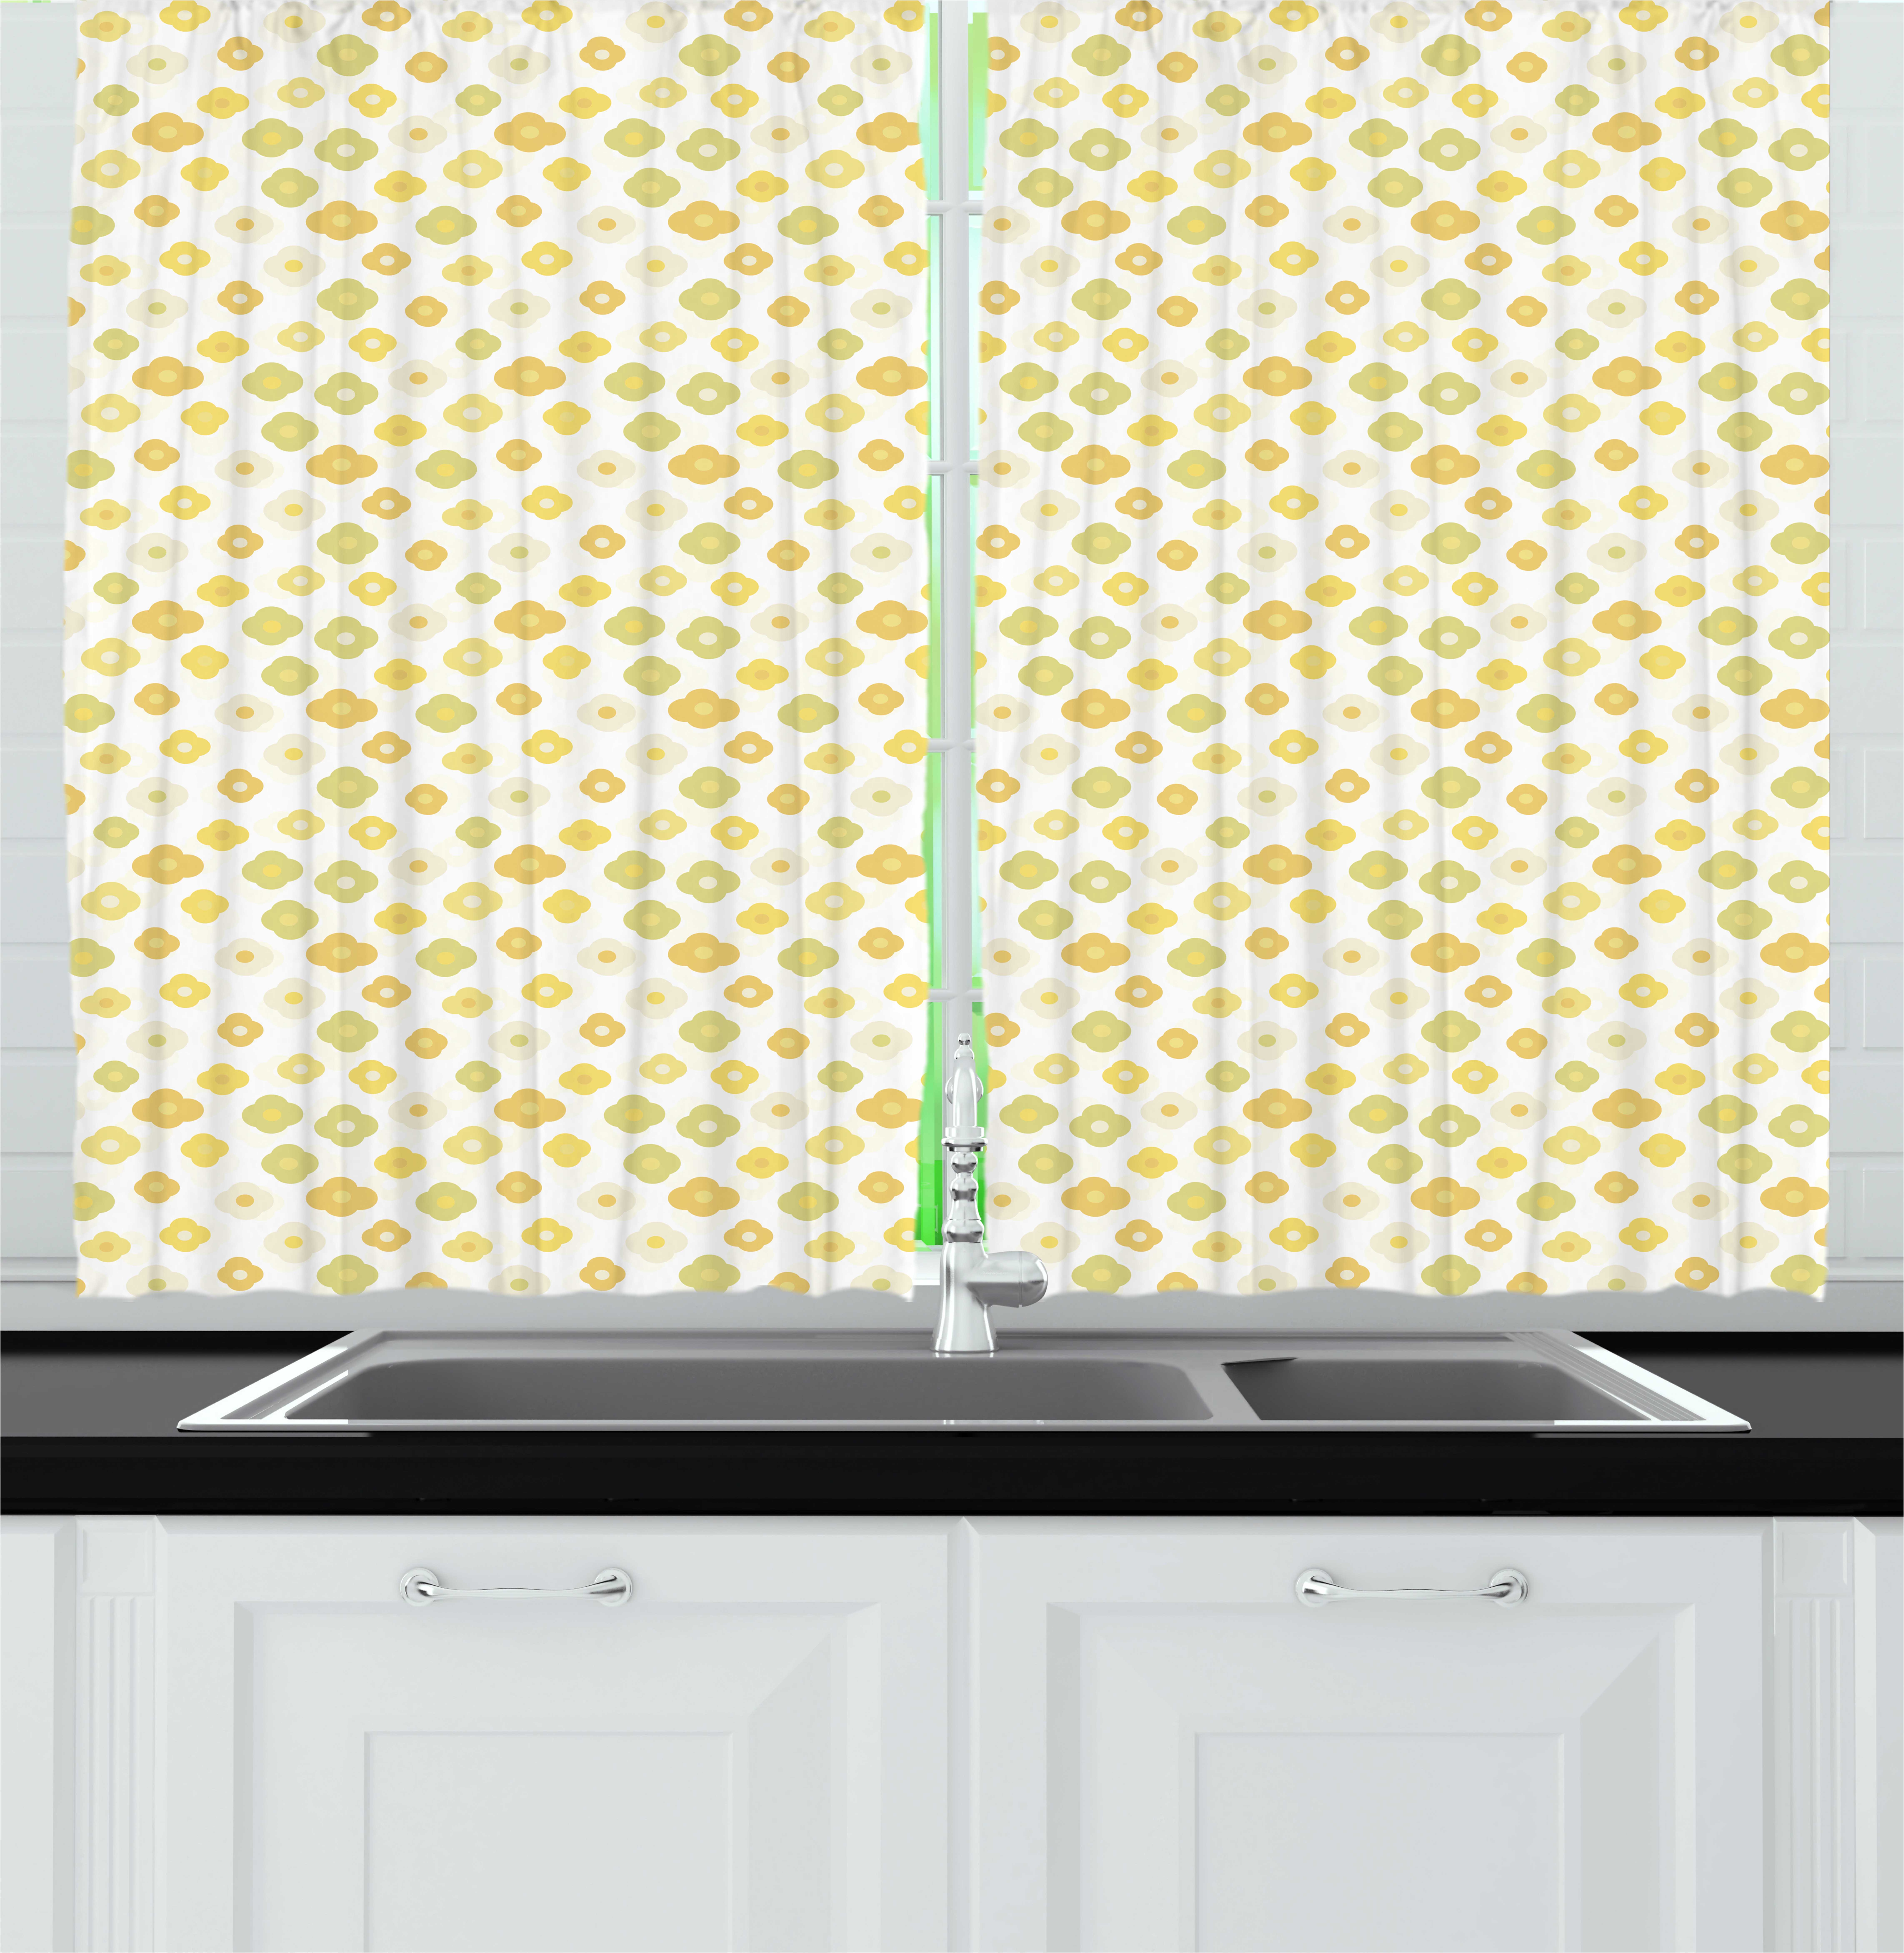 Floral Curtains 2 Panels Set, Summer Kitchen Design Cartoon Shaped Little Flowers Daisy Print, Window Drapes for Living Room Bedroom, 55W X 39L Inches, Pale Green Yellow and White, by Ambesonne